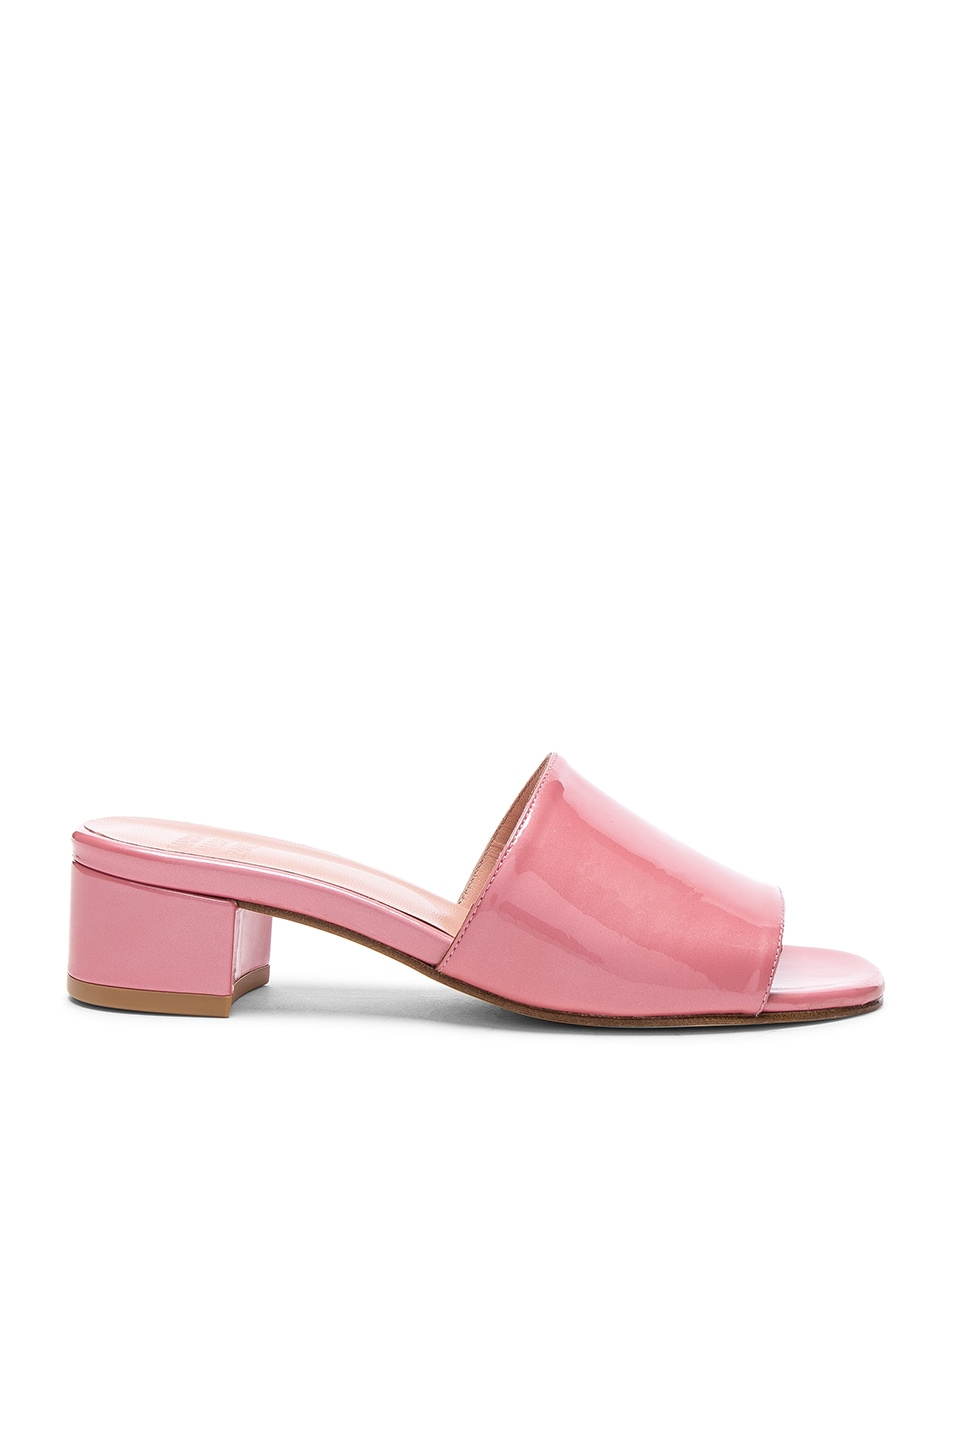 Image 1 of Maryam Nassir Zadeh Patent Leather Sophie Slides in Pink Sparkle